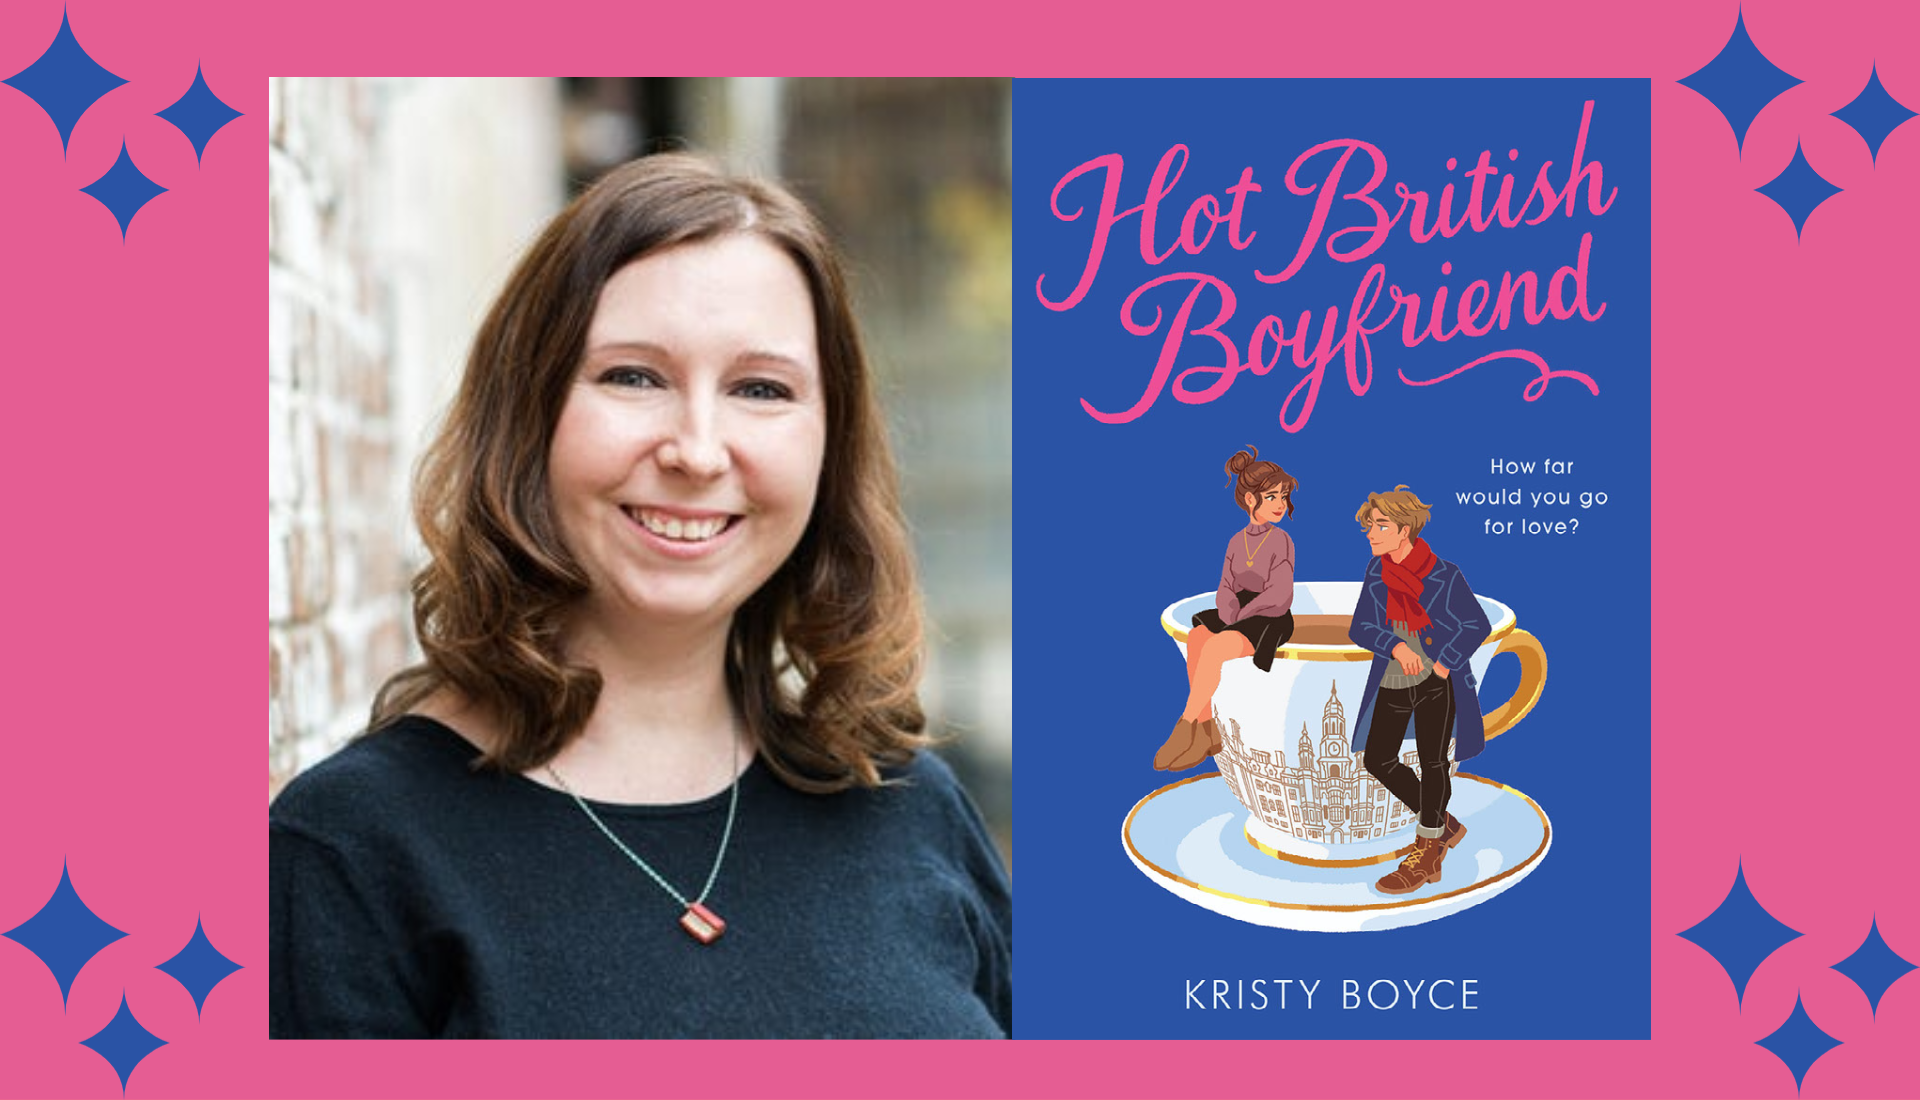 Kristy Boyce, author or Hot British Boyfriend